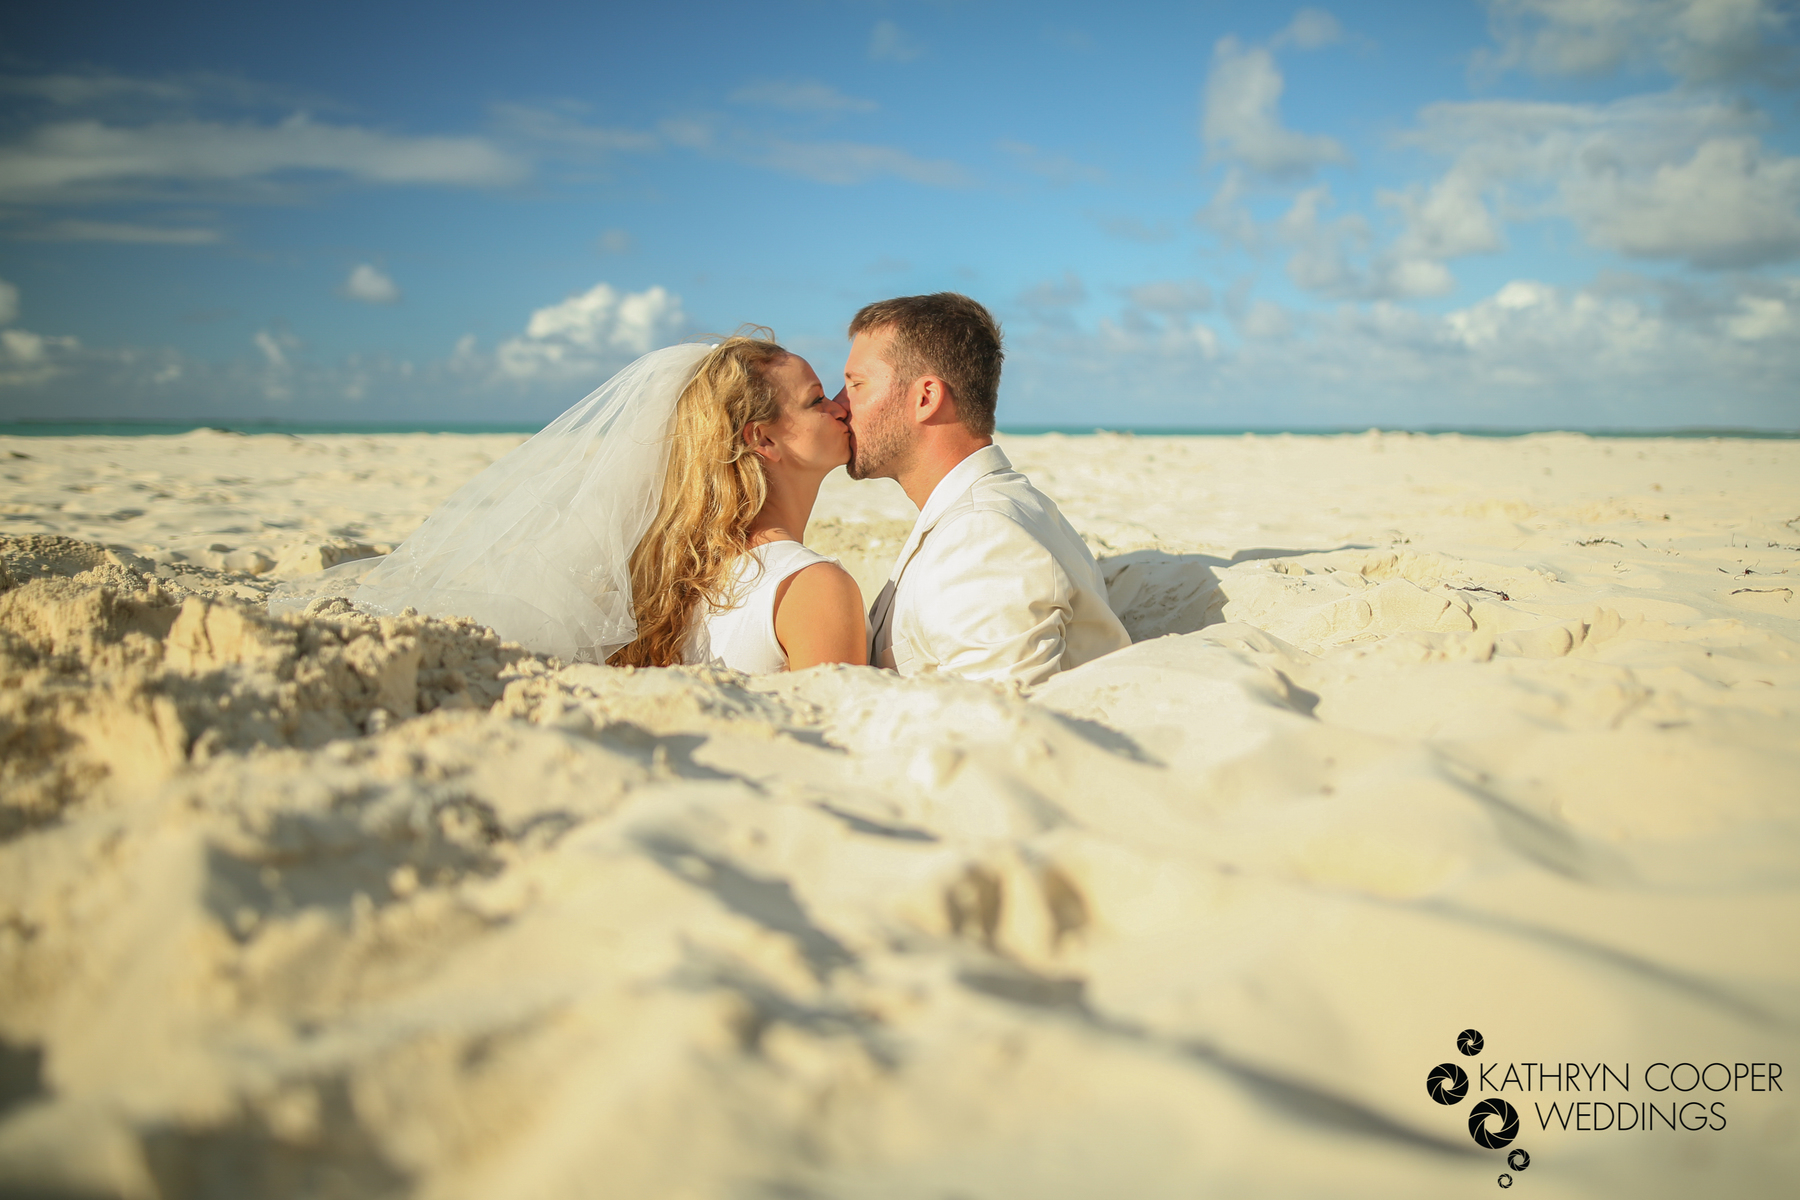 Destination beach wedding Bahamas with couple in sand kissing